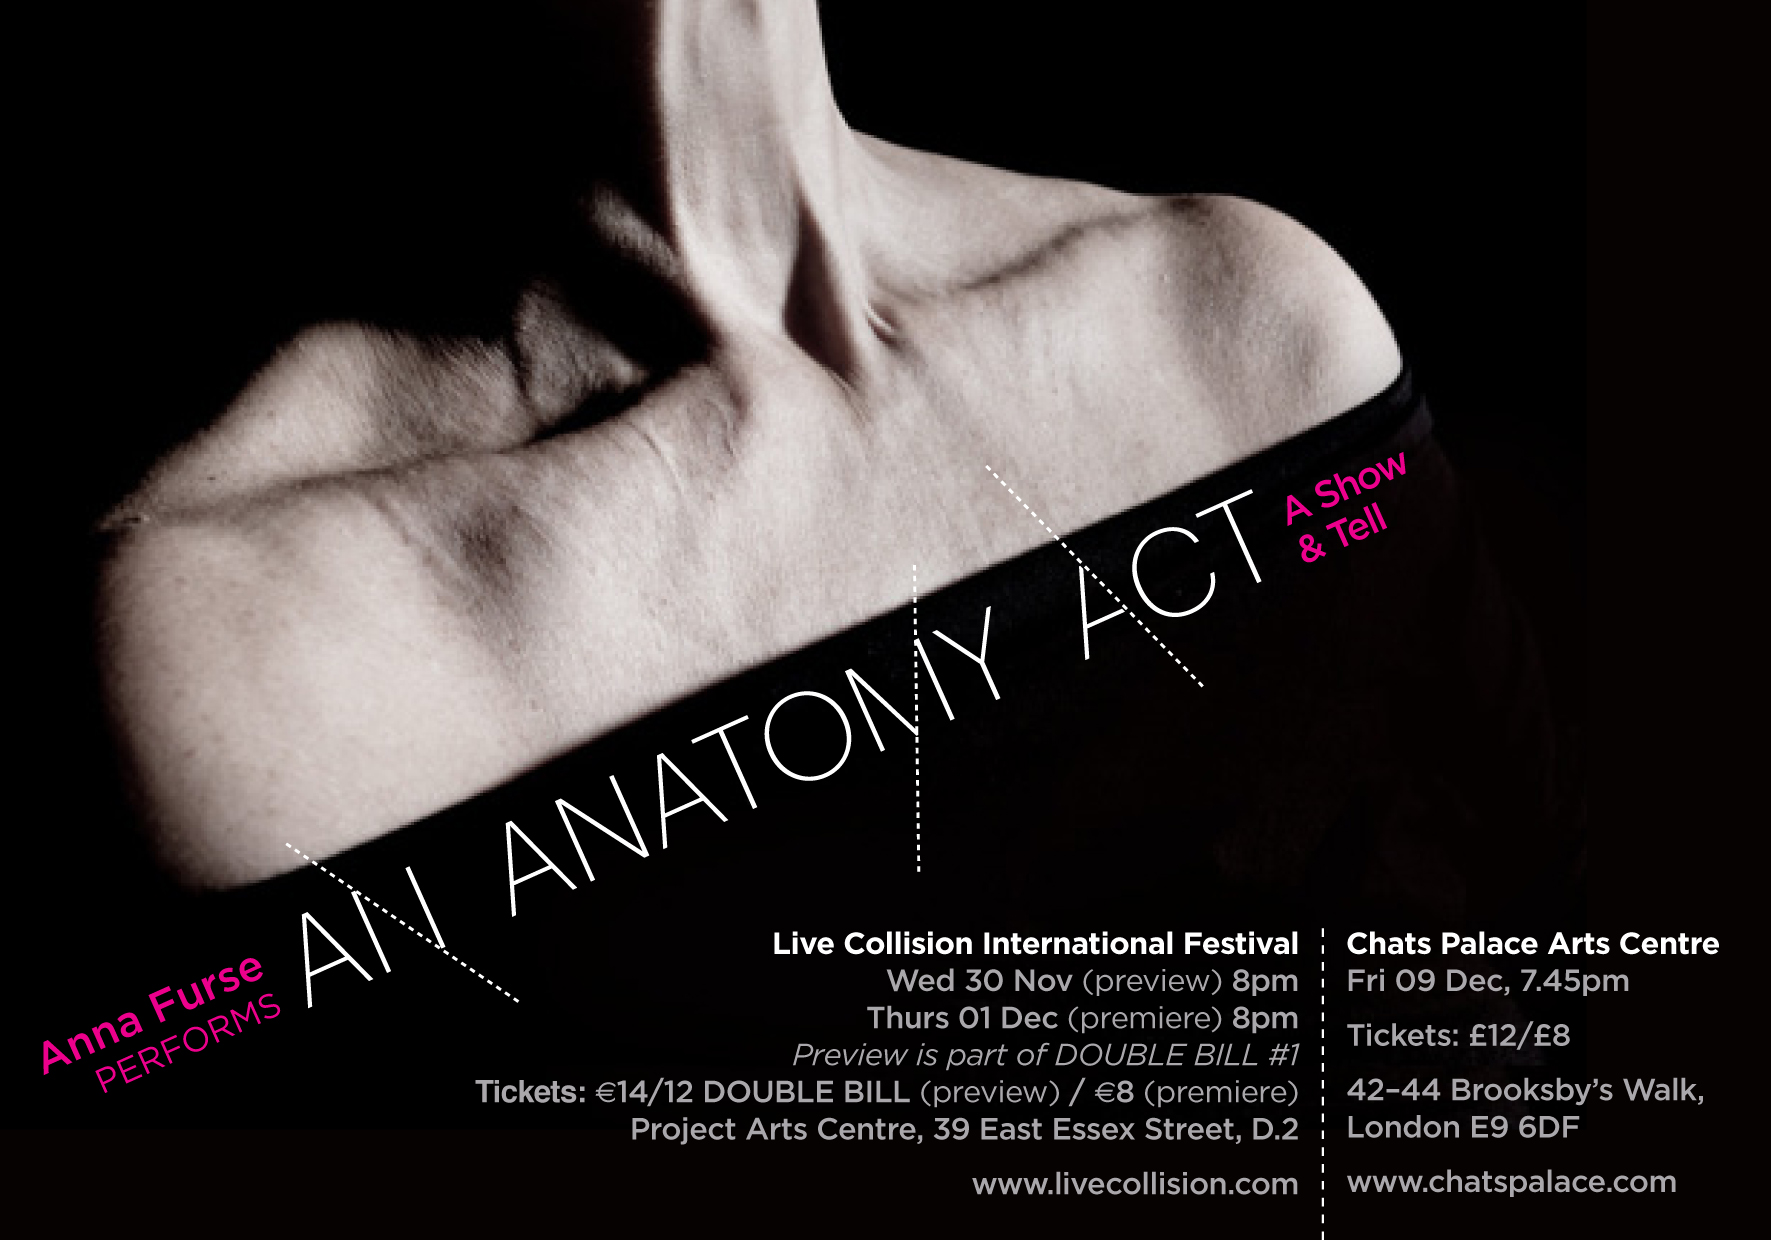 http://www.livecollision.com/portfolio/an-anatomy-act-a-show-and-tell/